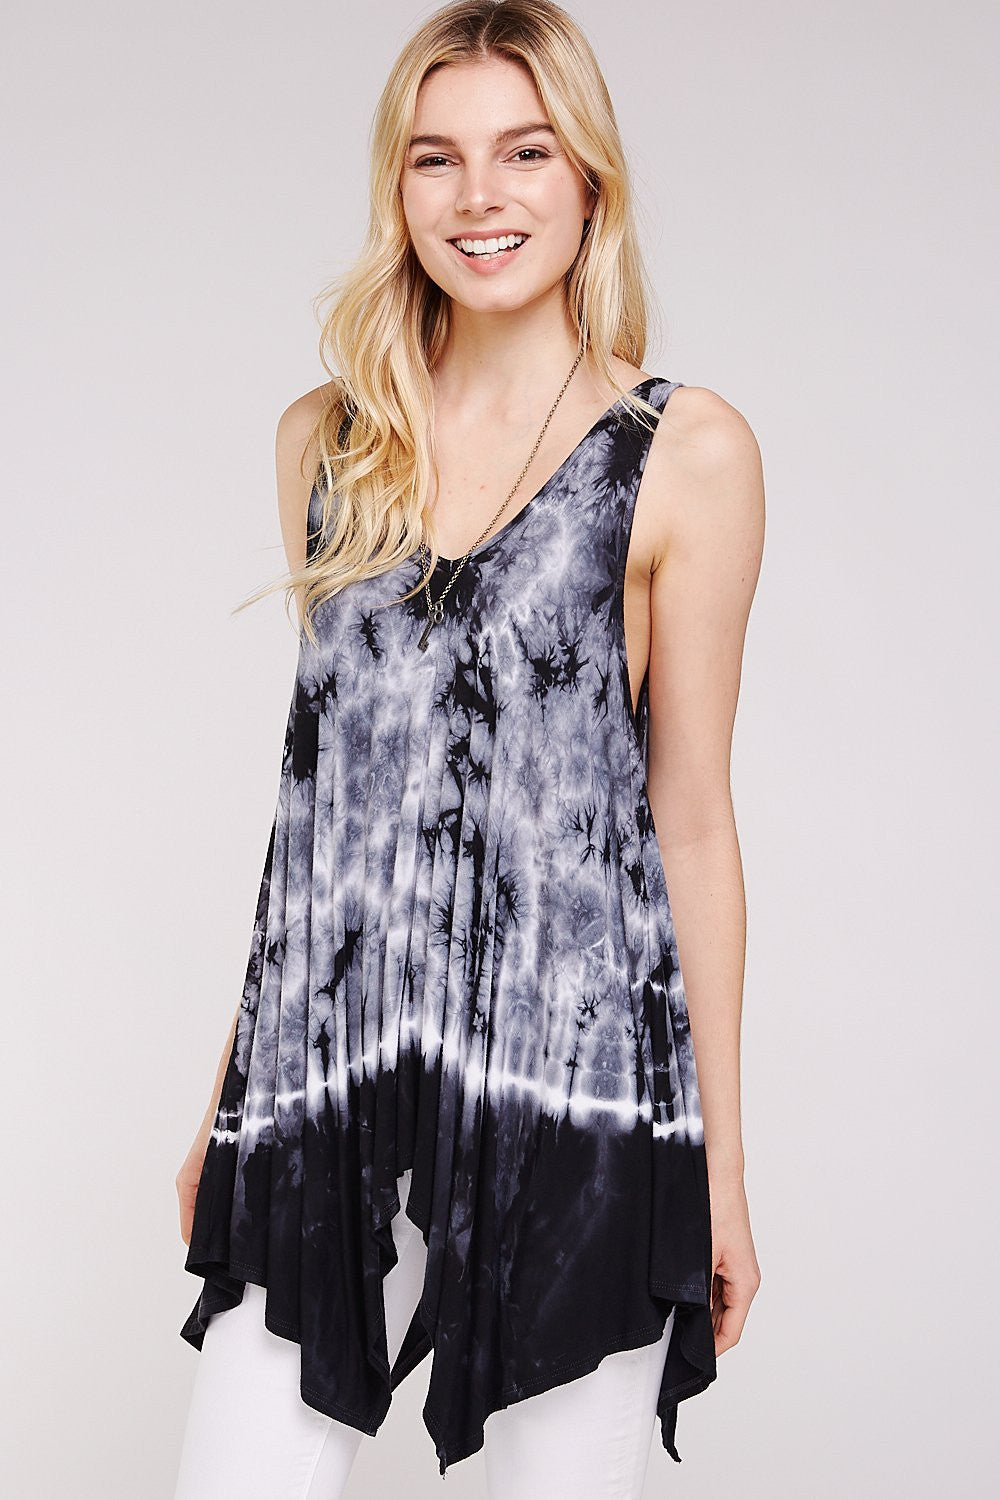 Wholesale Clothing, Online Wholesale Clothing, Women Clothing, Bohemian, Free People, tiedye, specialty wash, wholesale seller, wholesale women clothing shop, gypsy look, USA made, URBAN X APPAREL-TIE DYE-UTR5205, fashiontrend2019